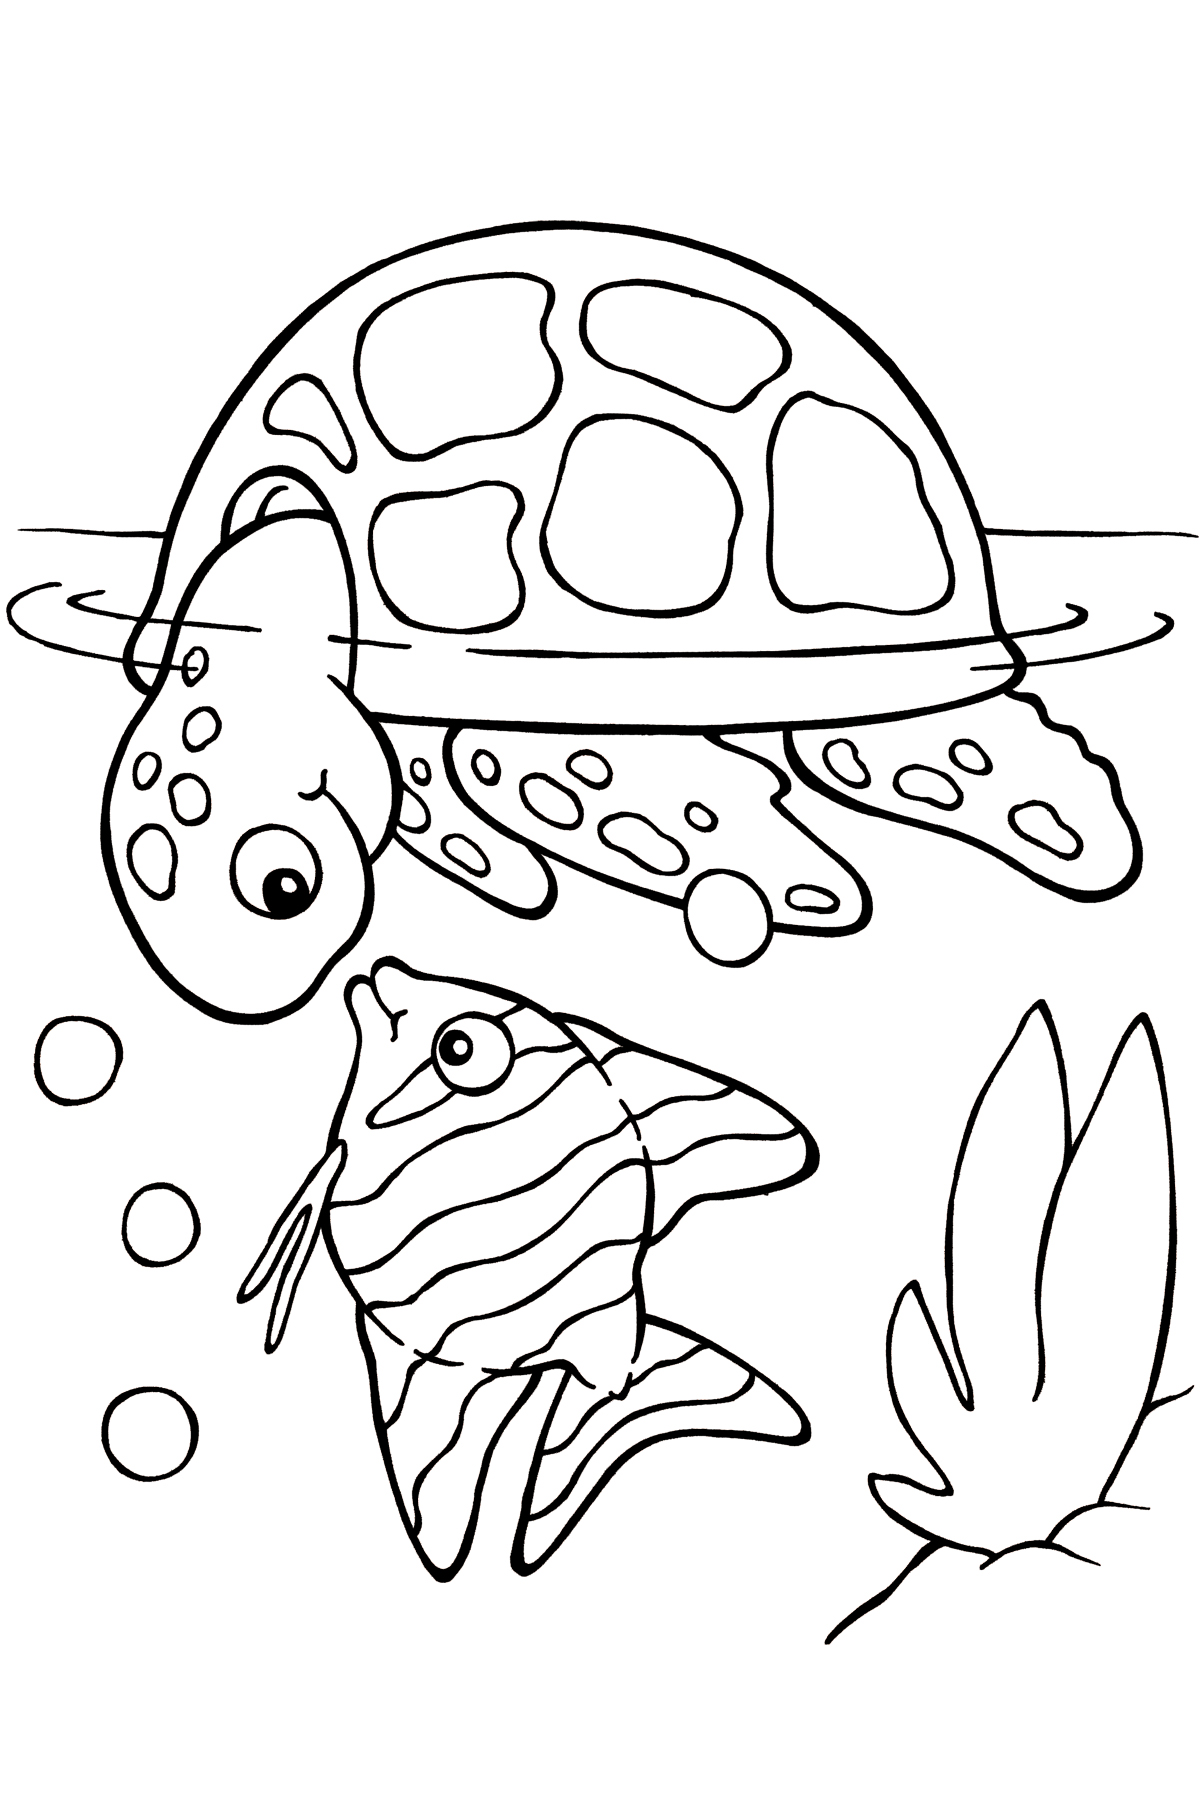 Sea turtle coloring pages to download and print for free for Cute sea animal coloring pages